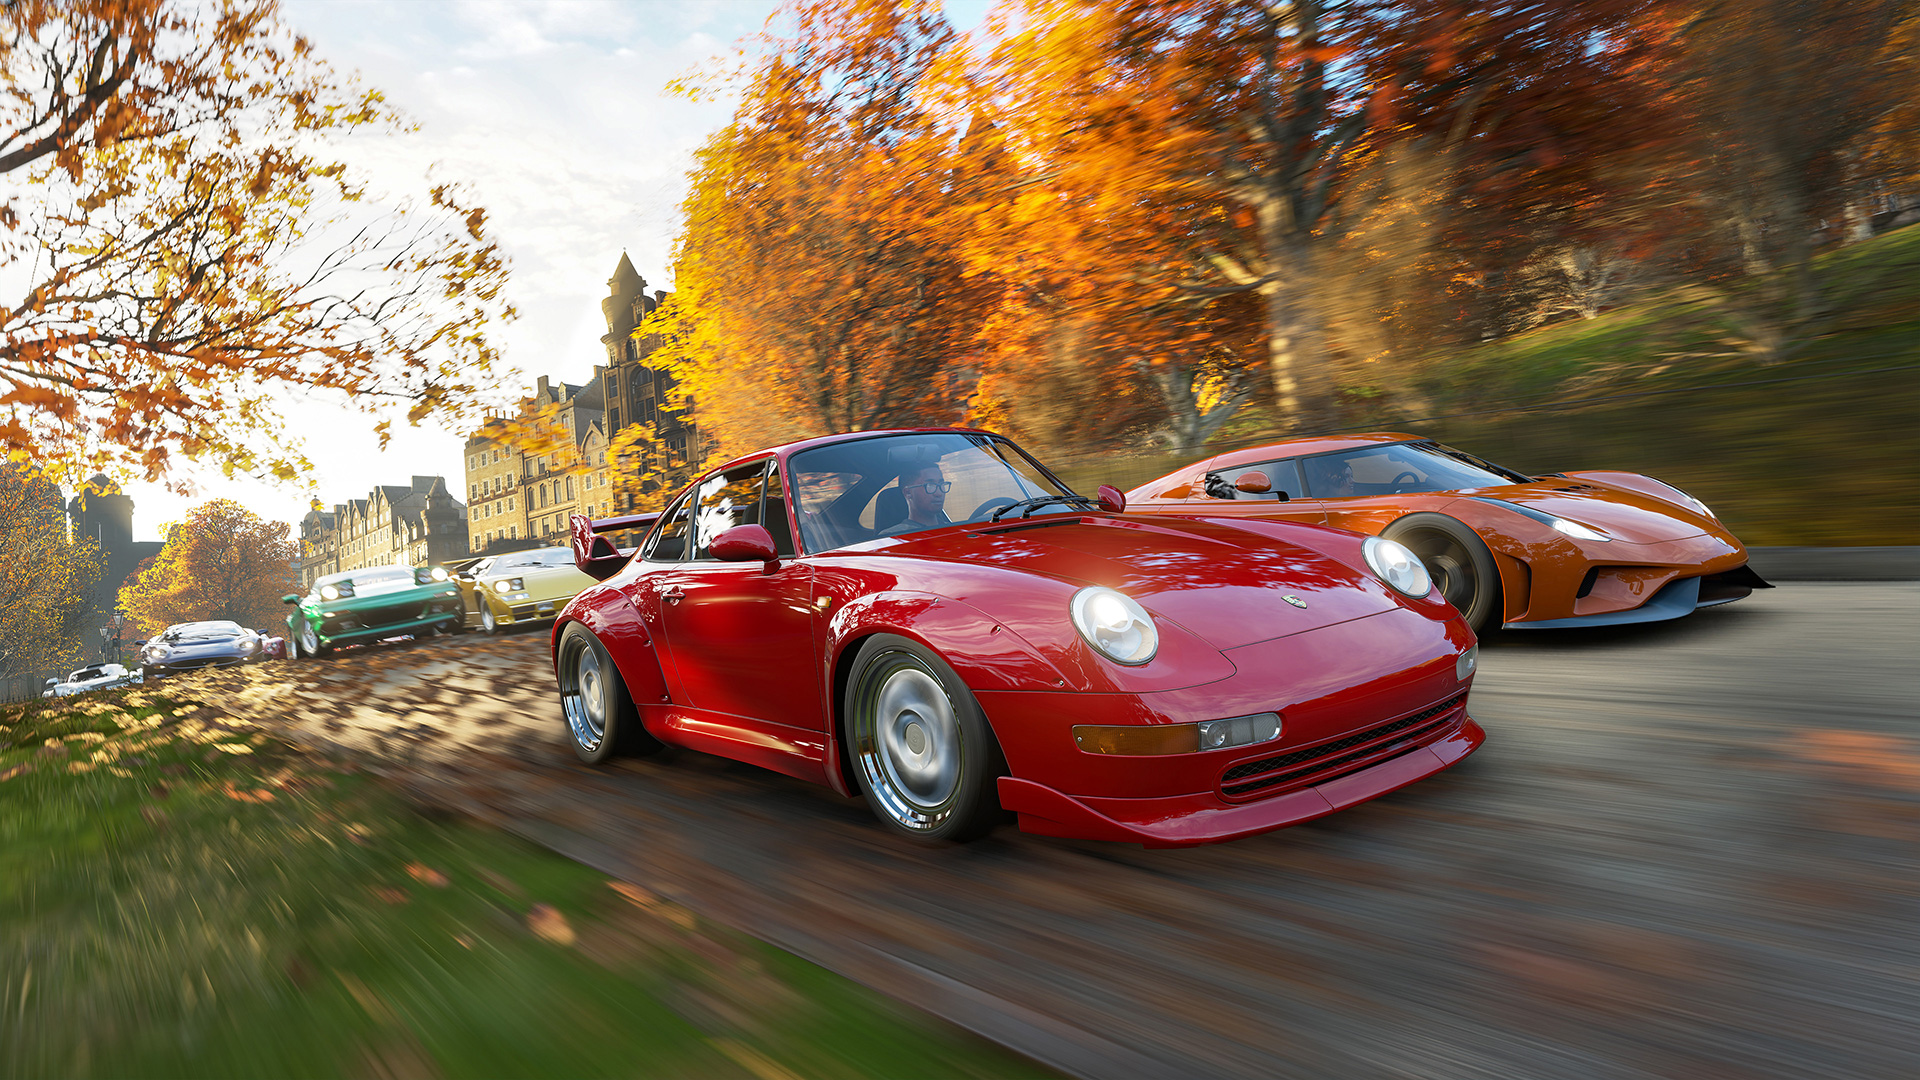 Forza Horizon 4 is on Steam and there's cross-play screenshot